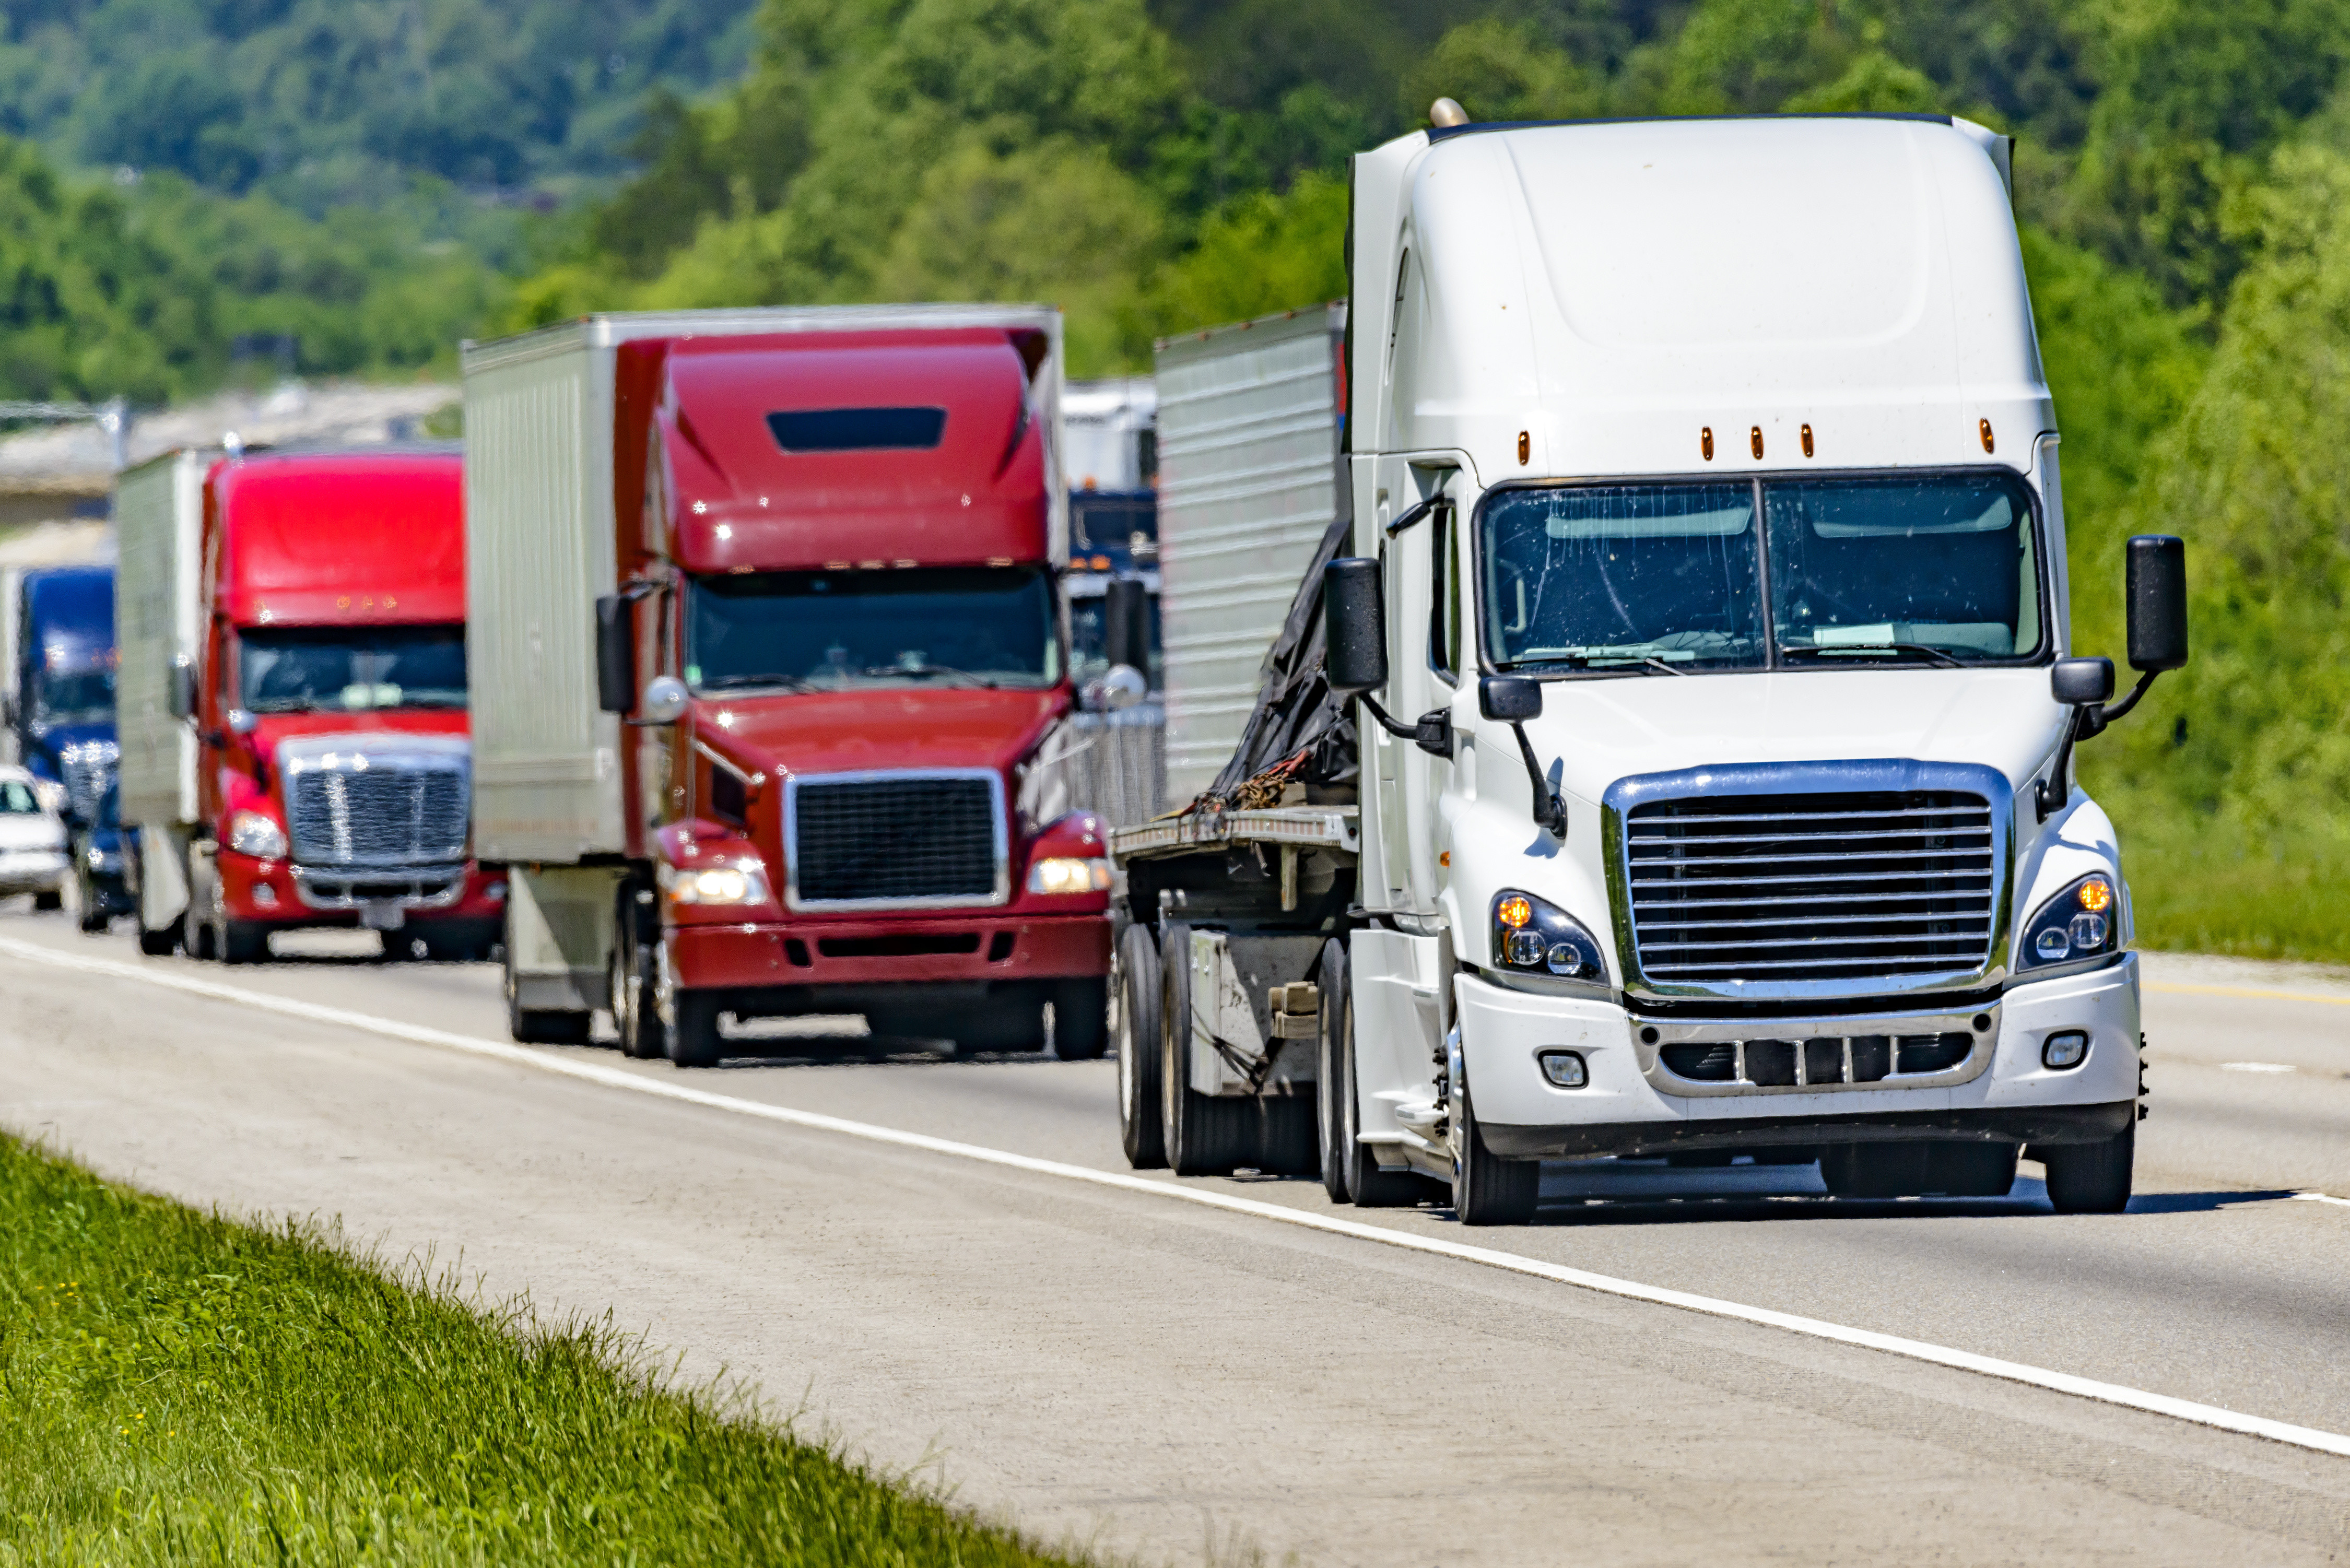 5 challenges truckers face on the road